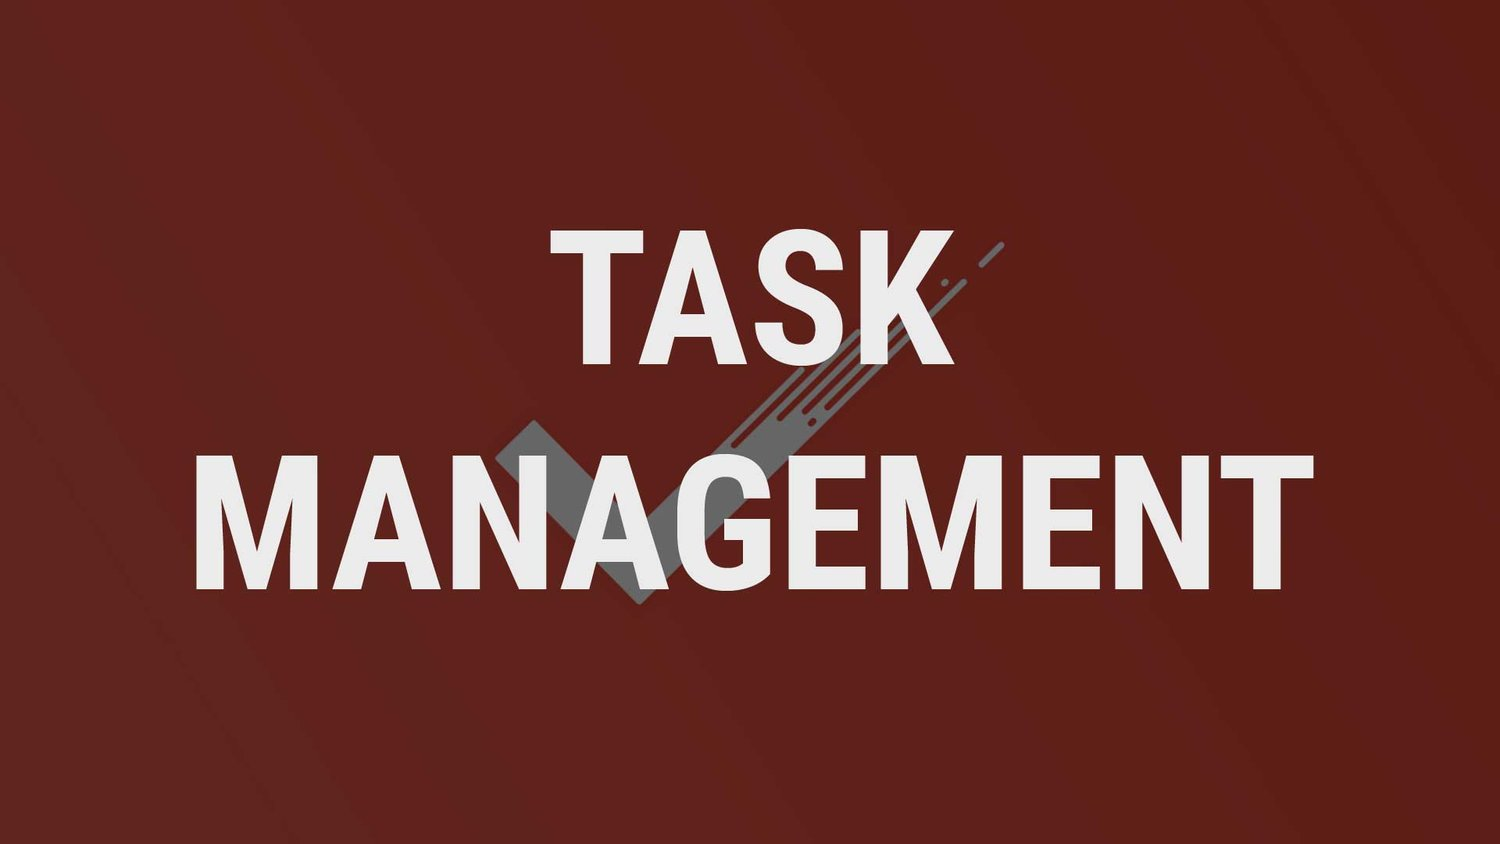 The Best Task Management for Mac after years of testing